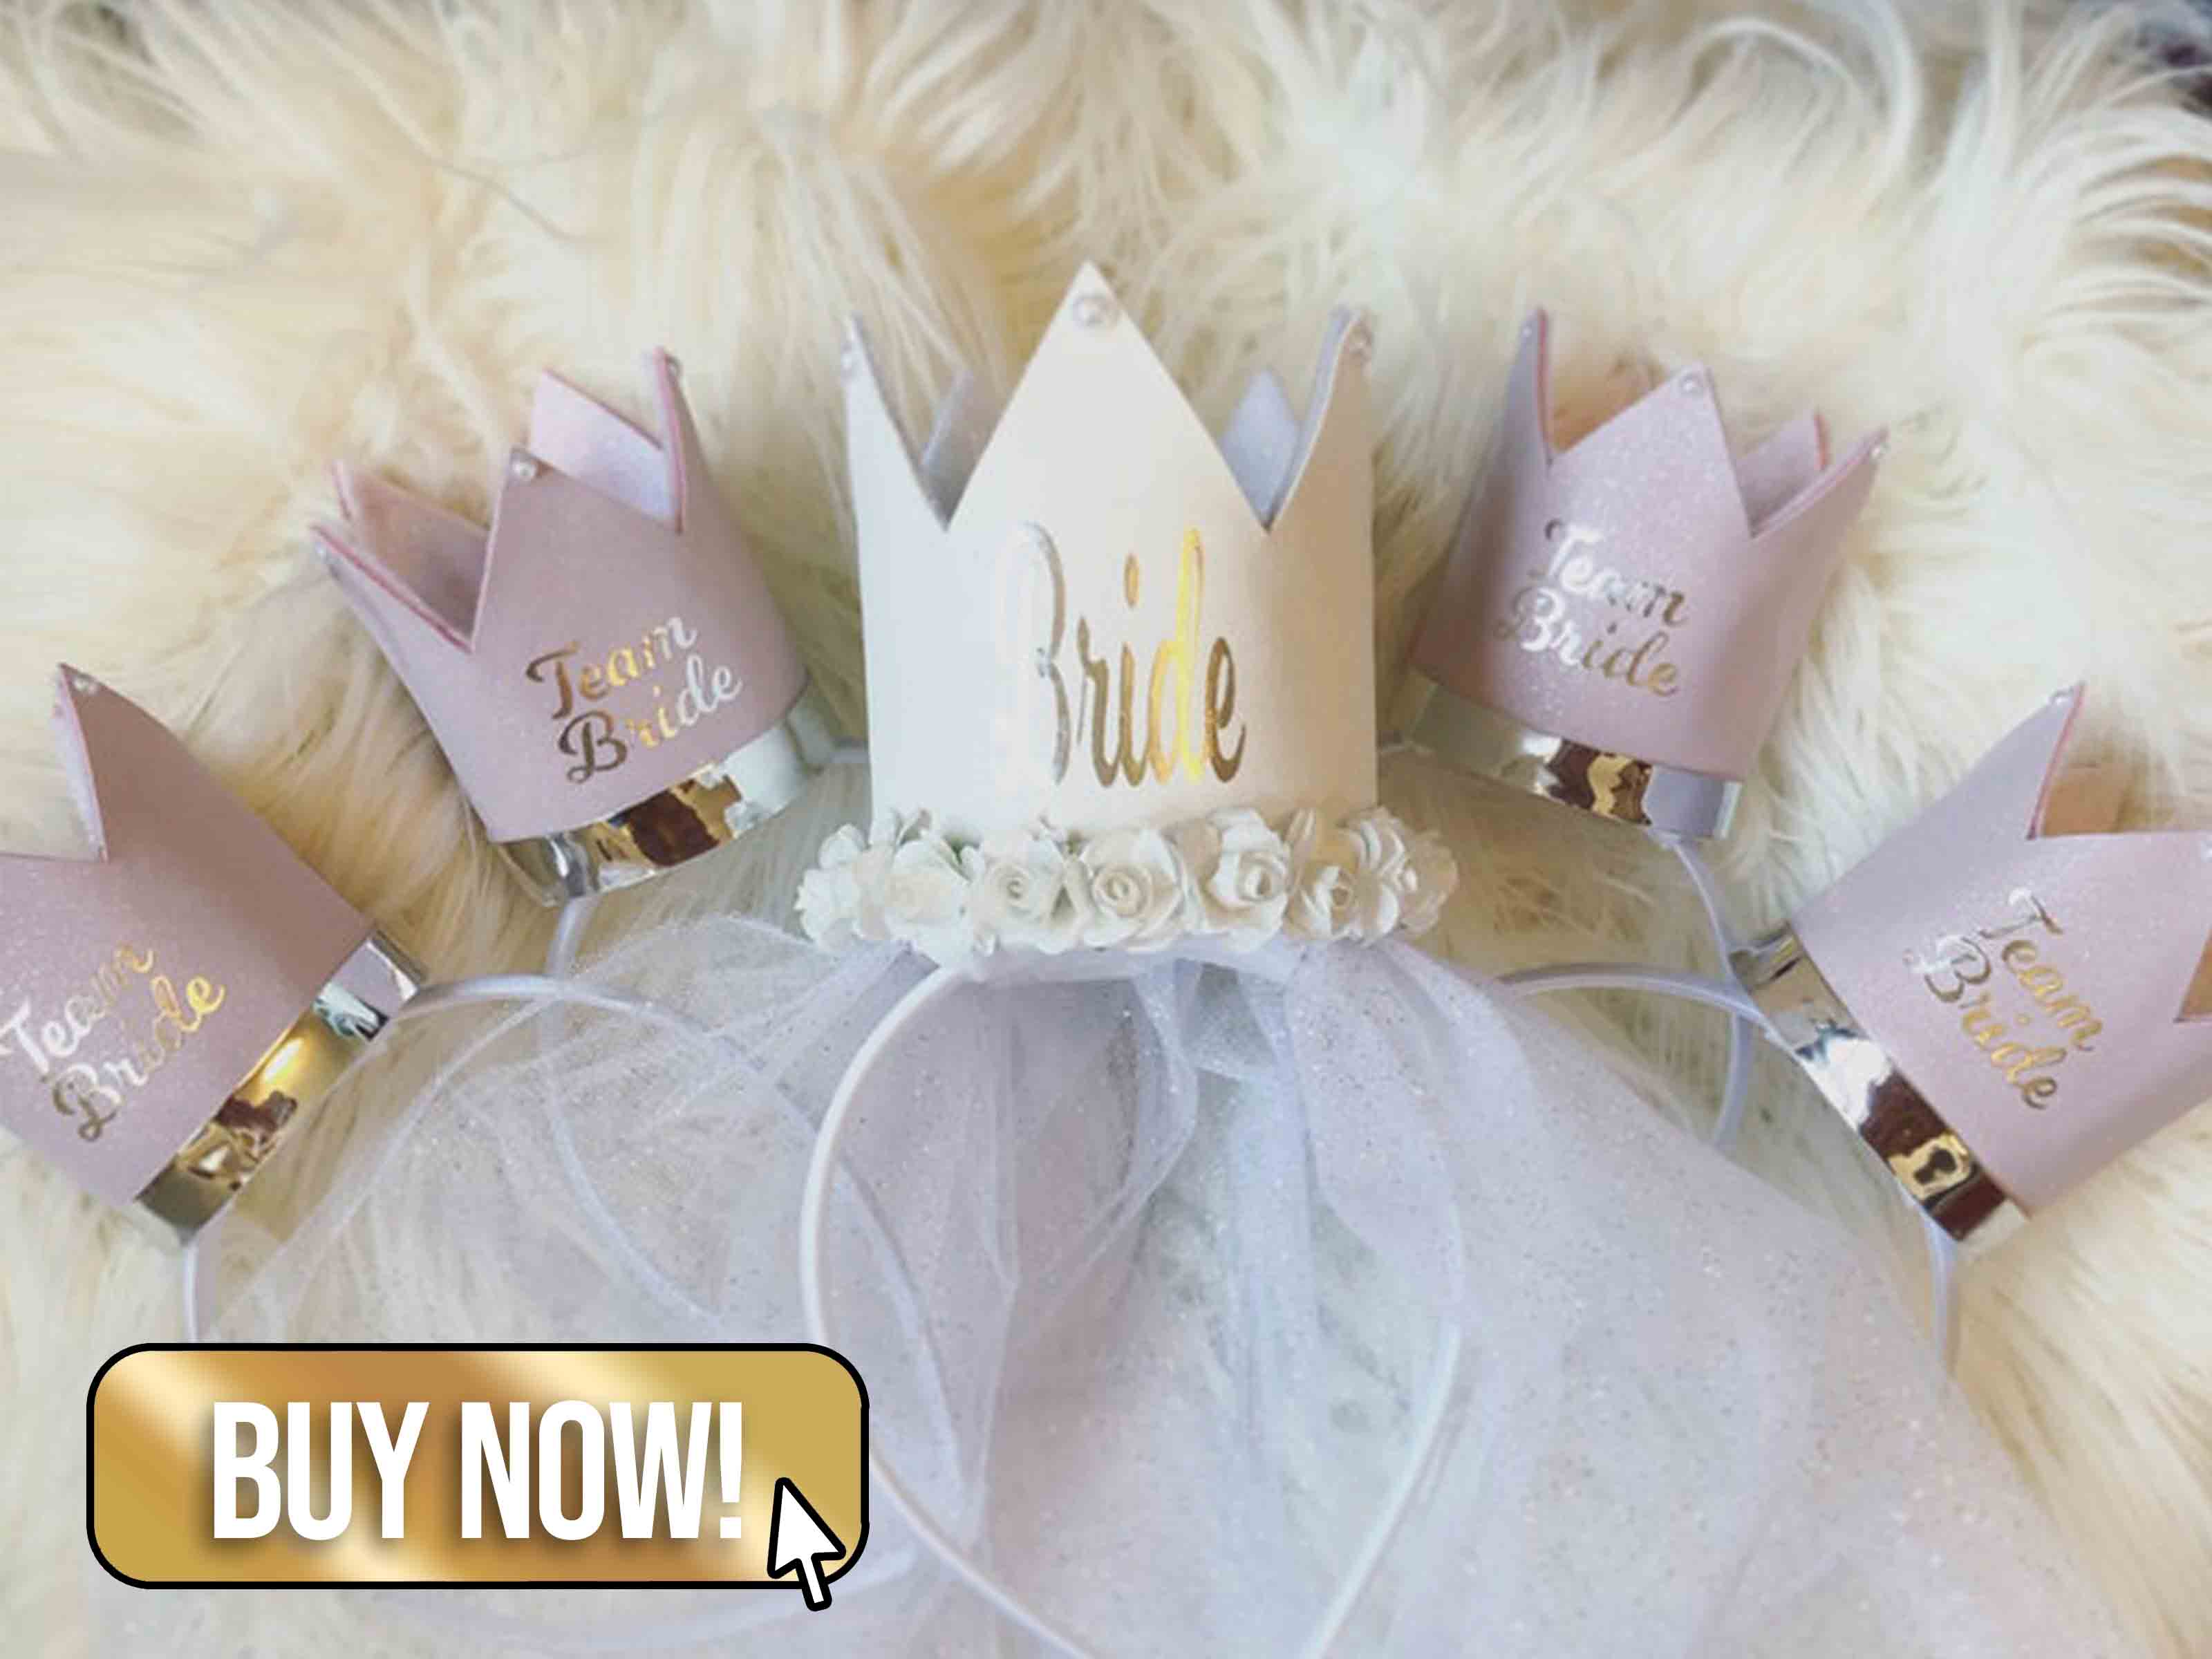 Lilac Glitter Suede Team Bride Bridal Shower Crowns - BunnyAndBearBows